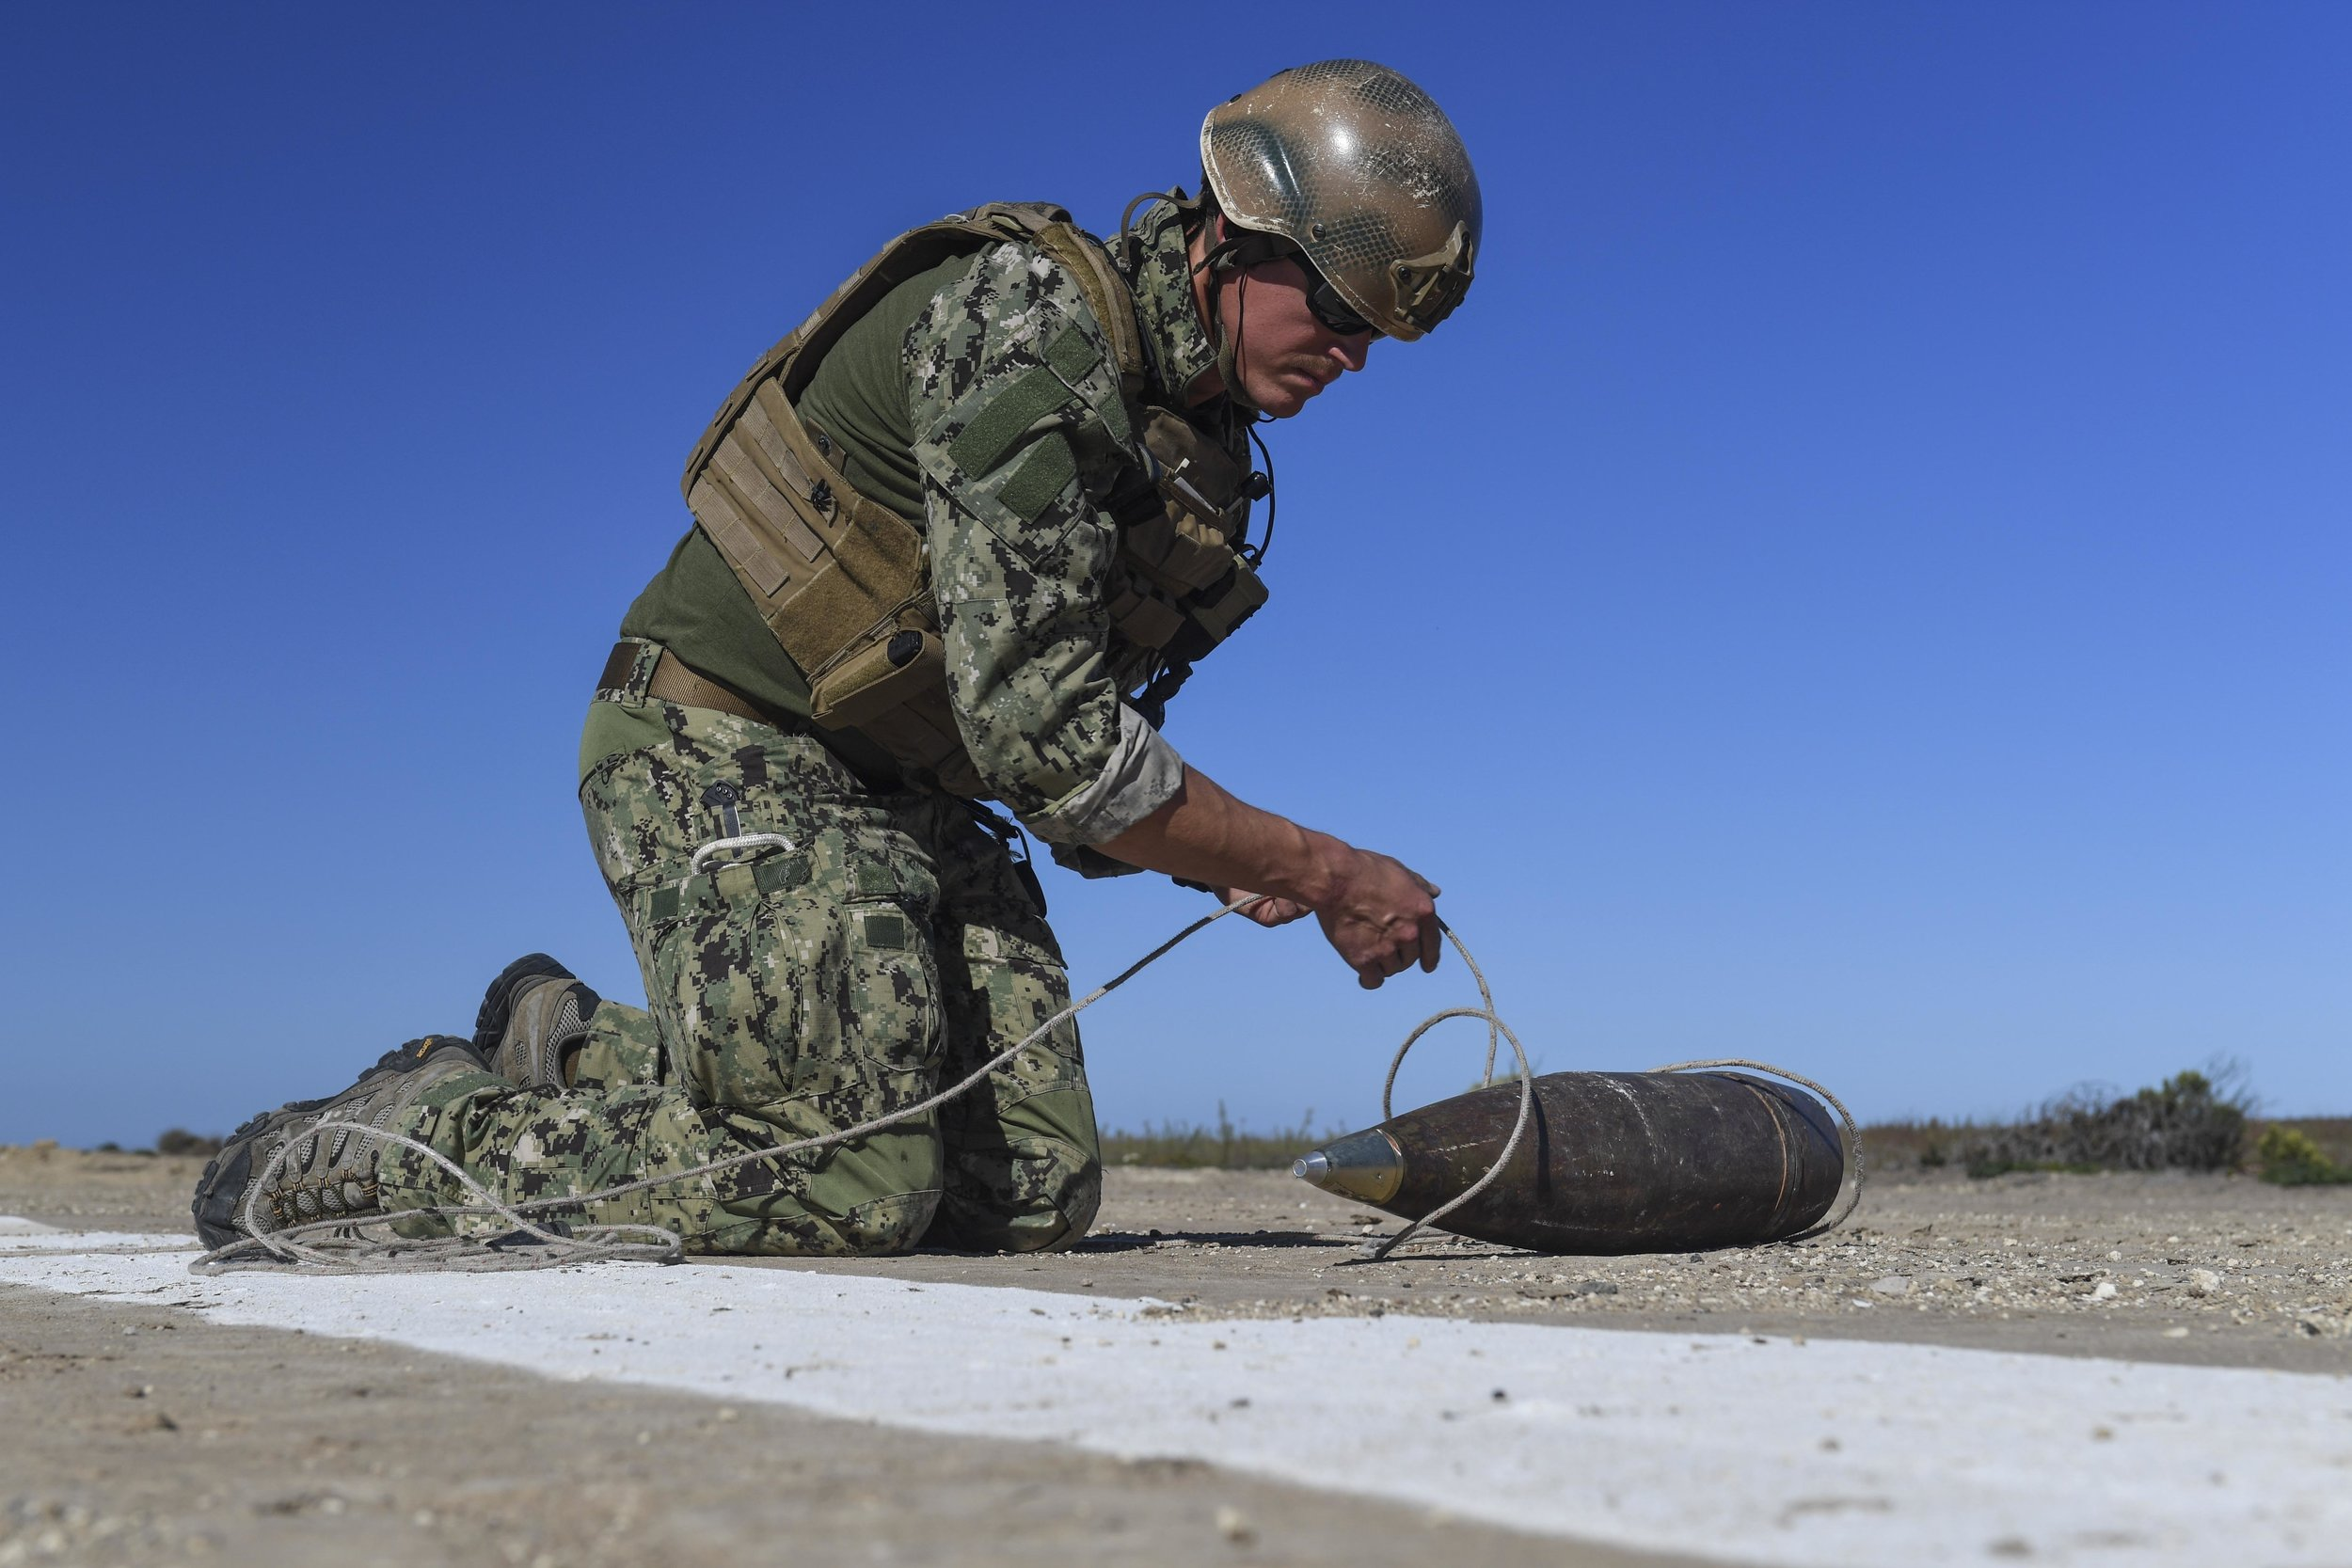 EOD technician investigating unexploded EOD